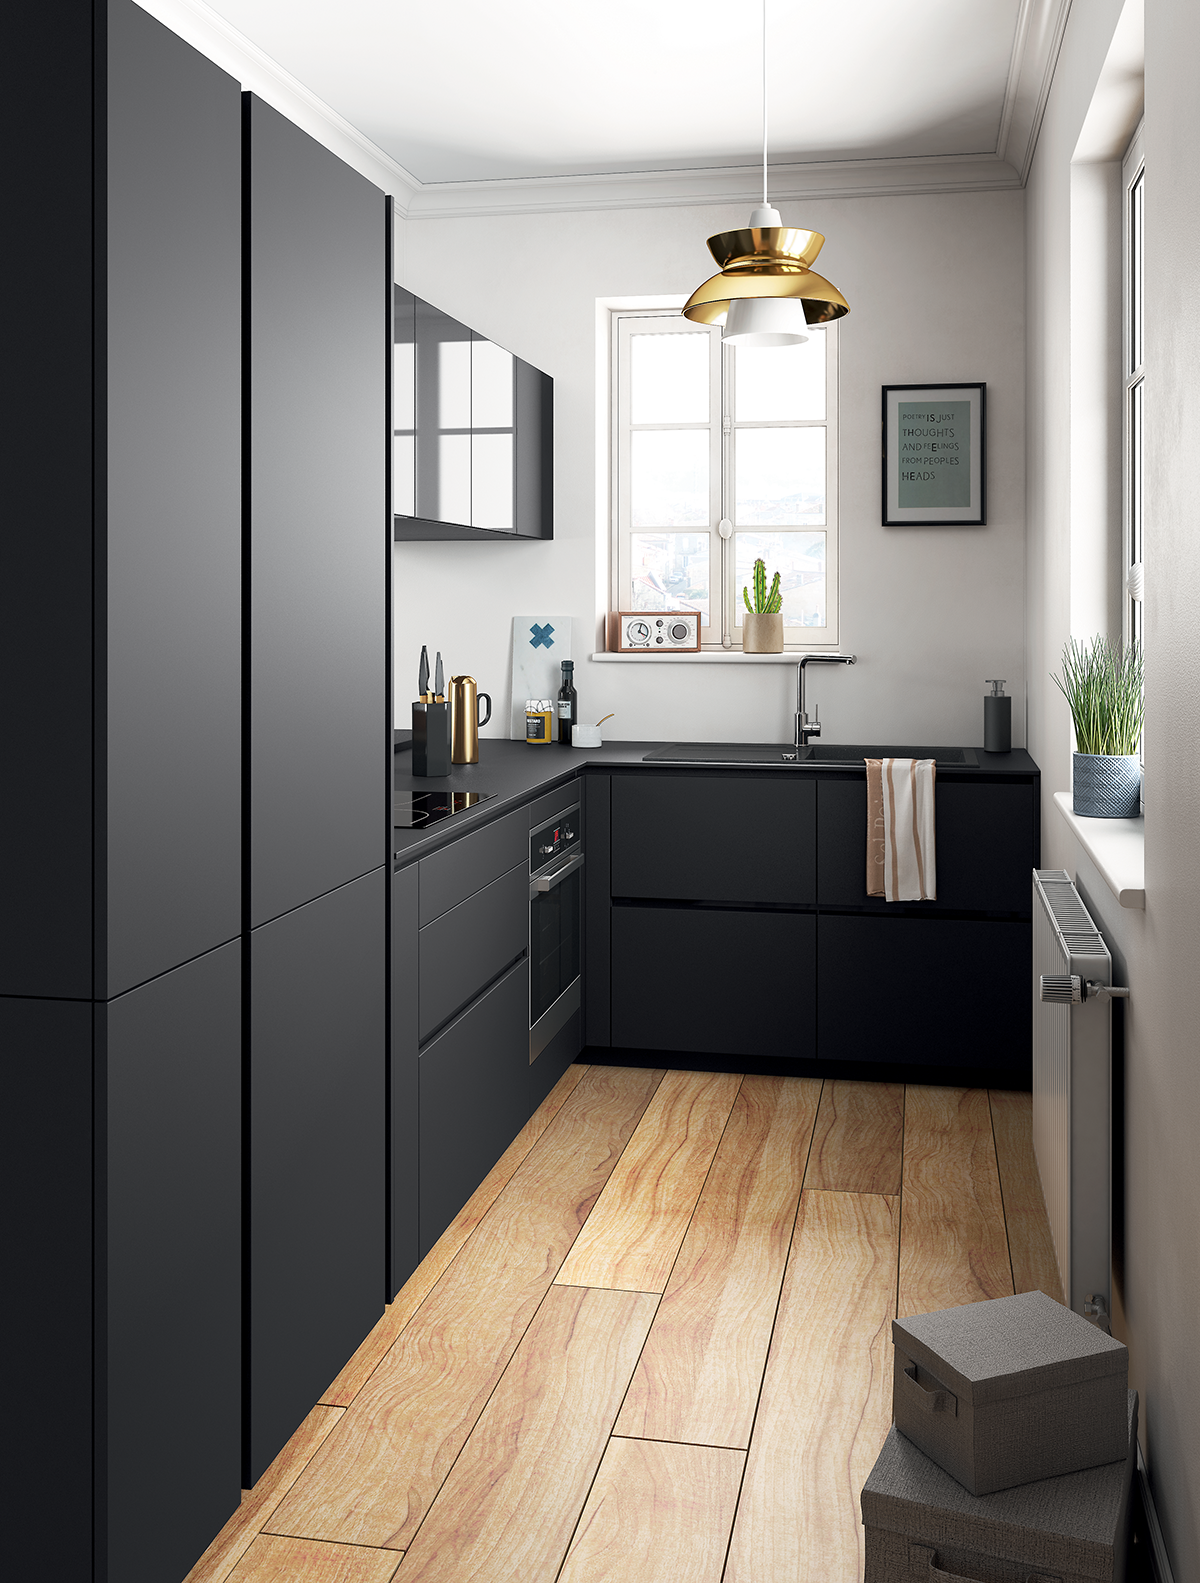 Modèles de cuisines | Pinterest | Kitchens, Matte black and Interiors